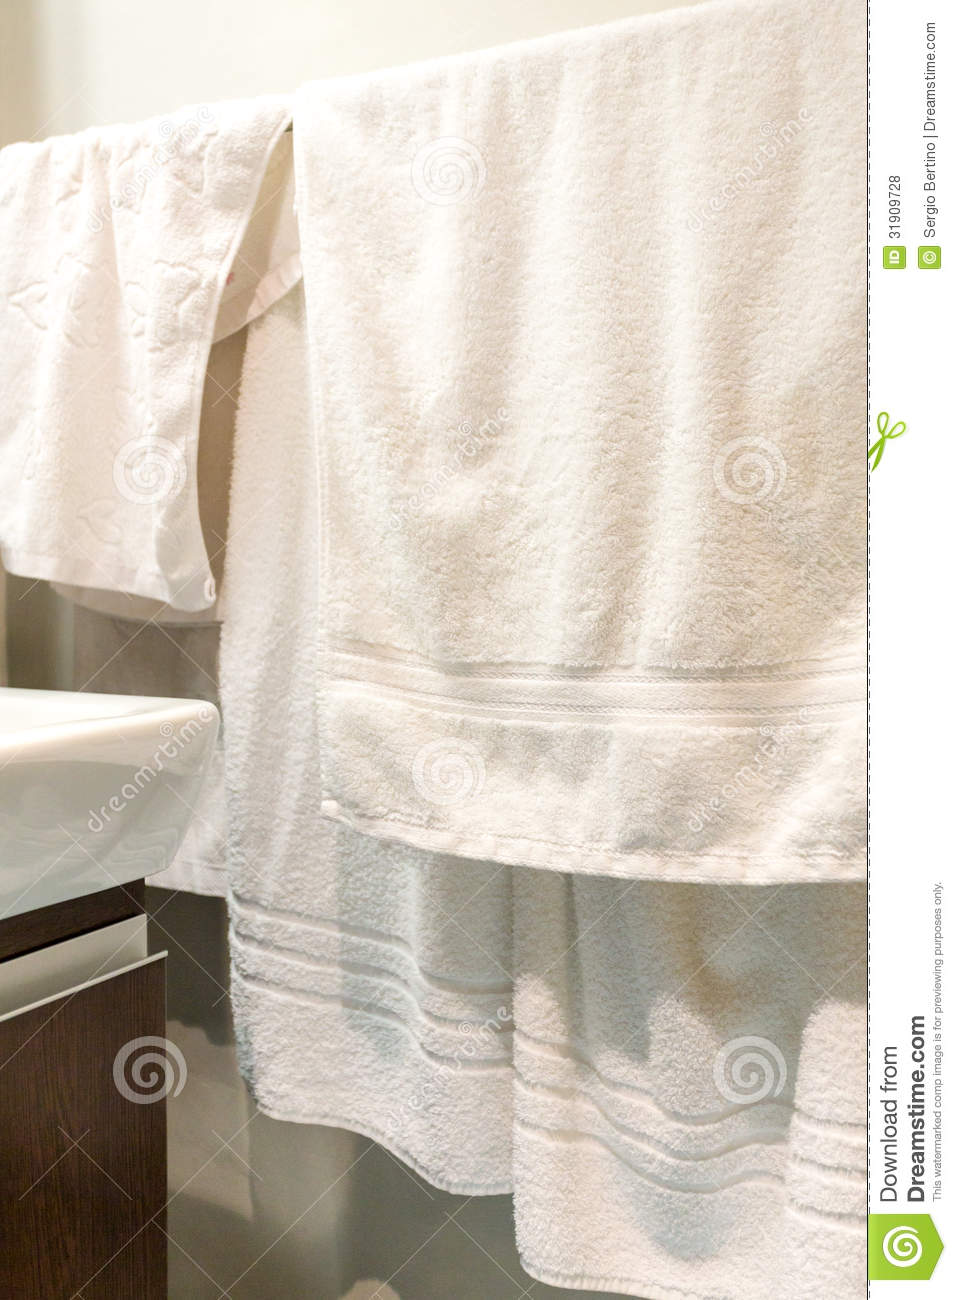 White Towels Hanging In Bathroom Stock Photo - Image: 31909728